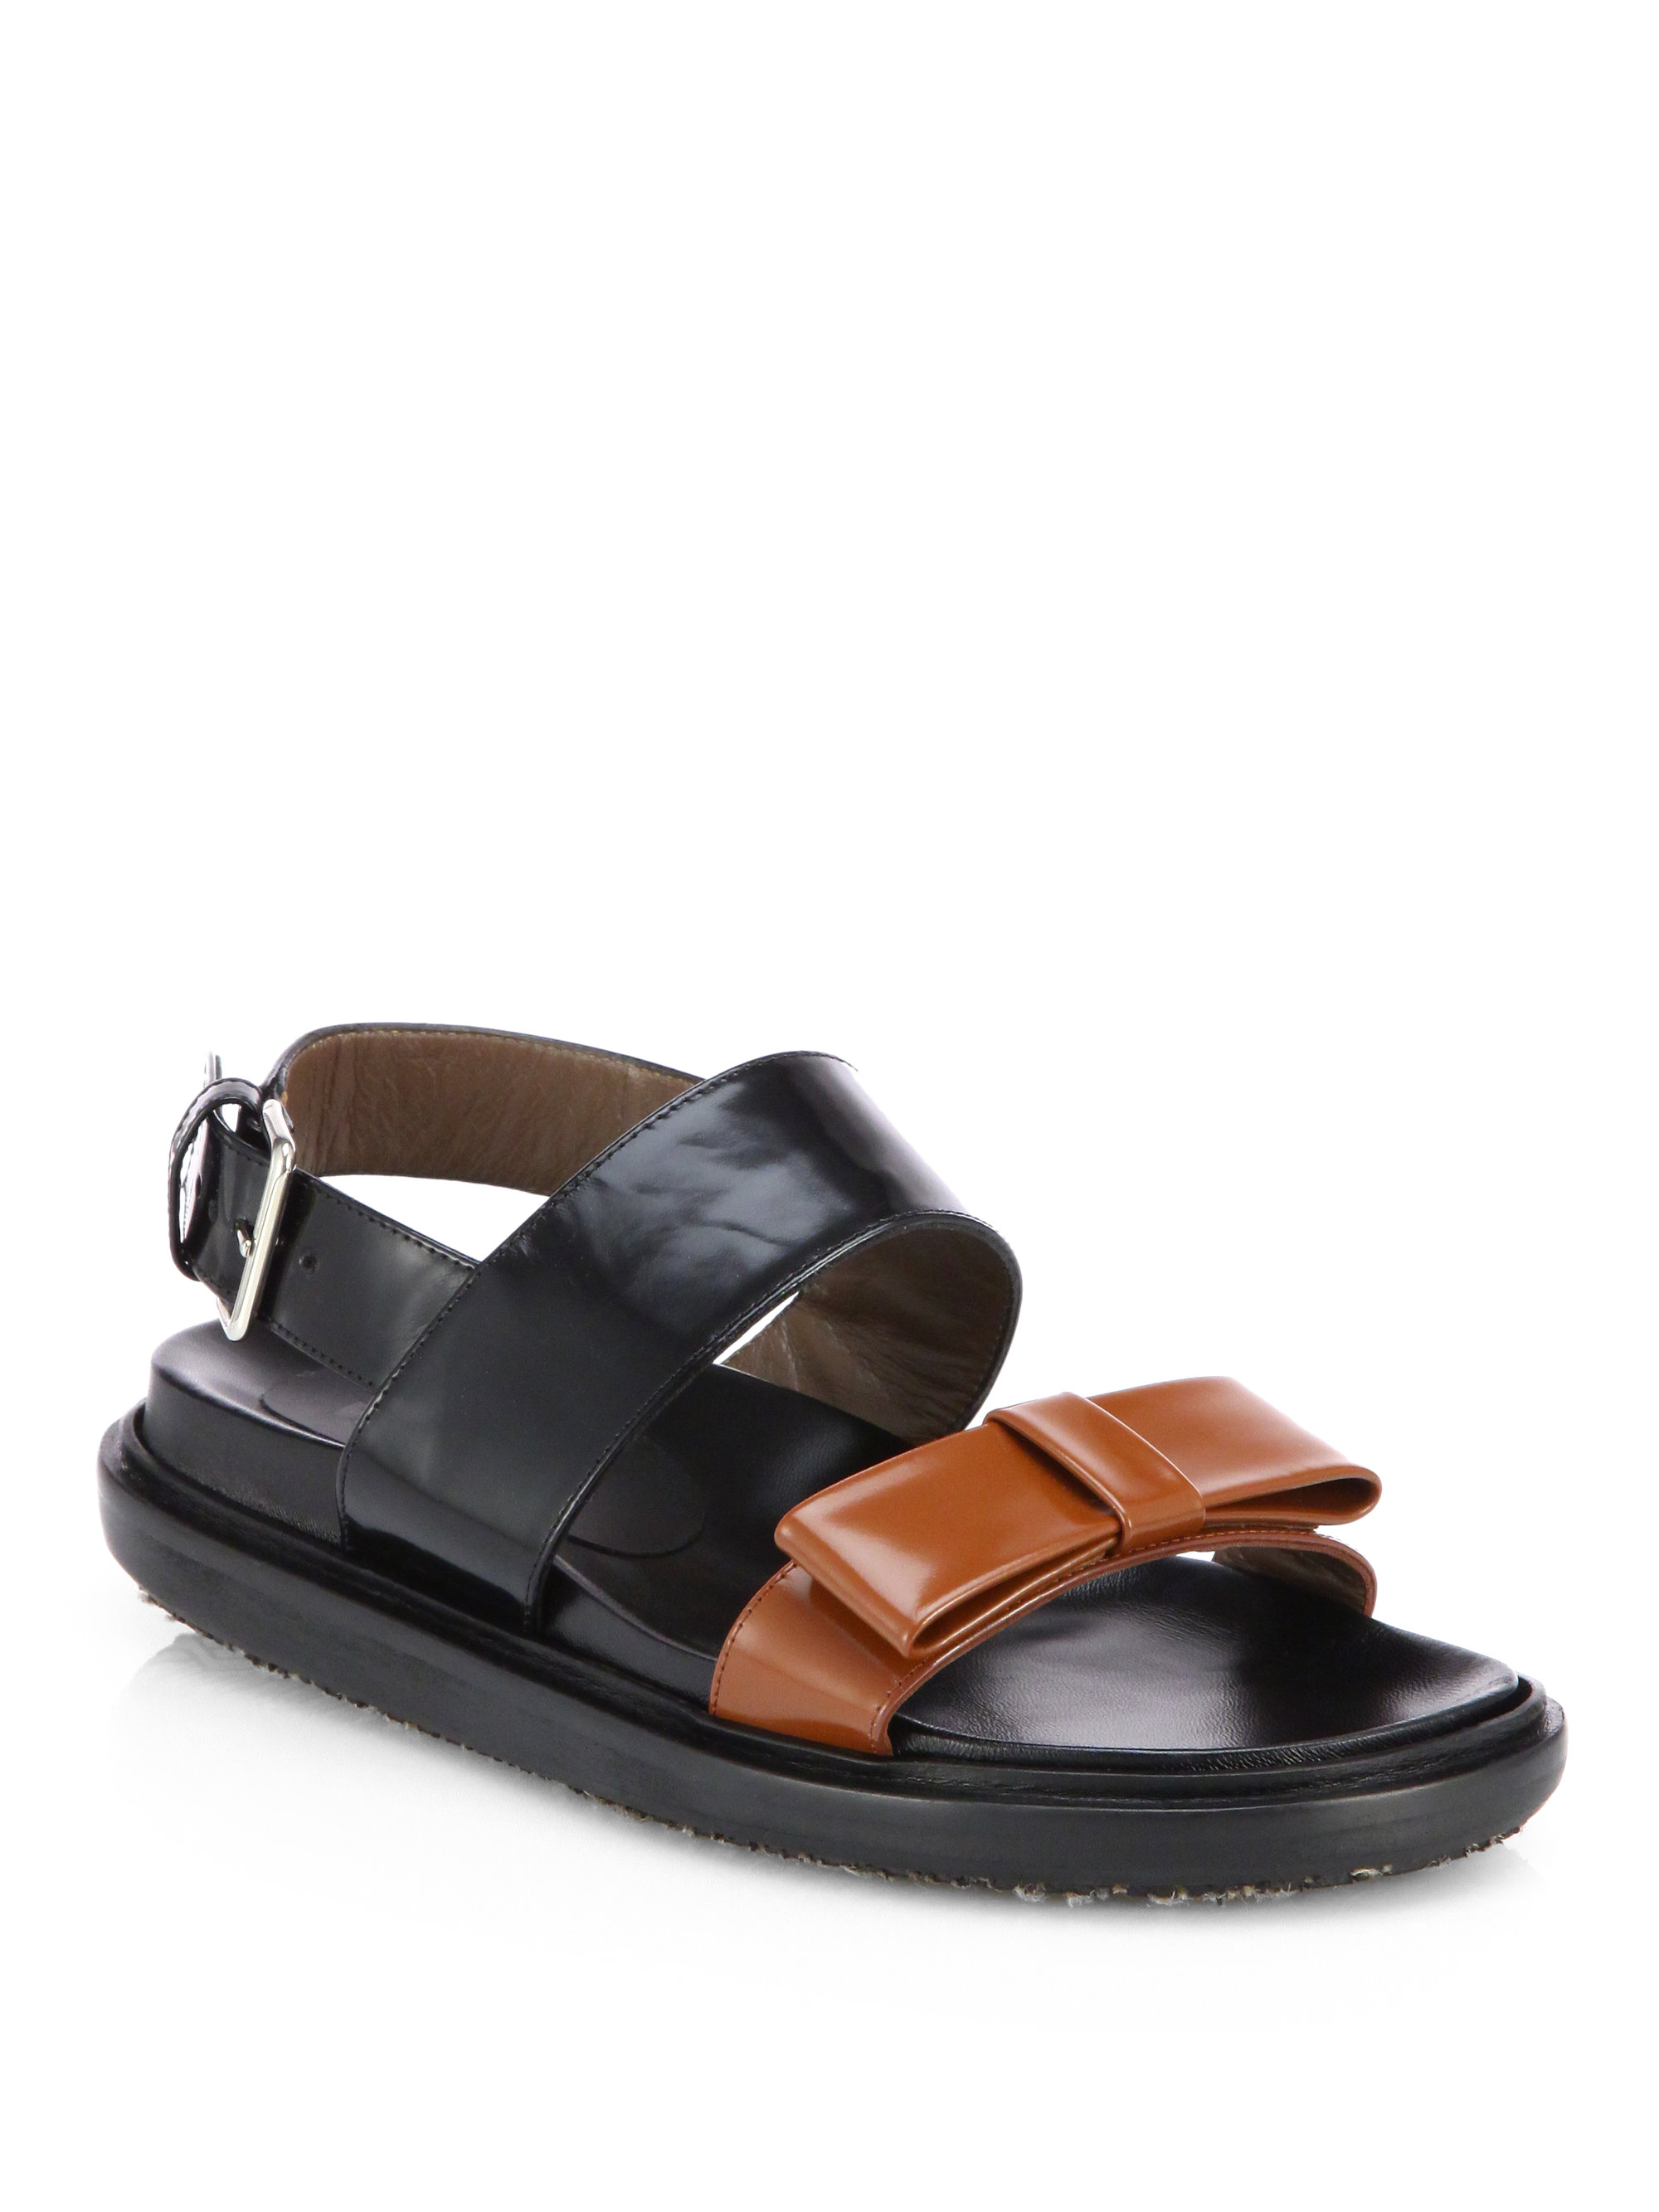 Marni Fussbett Bicolor Leather Bow Sandals In Black